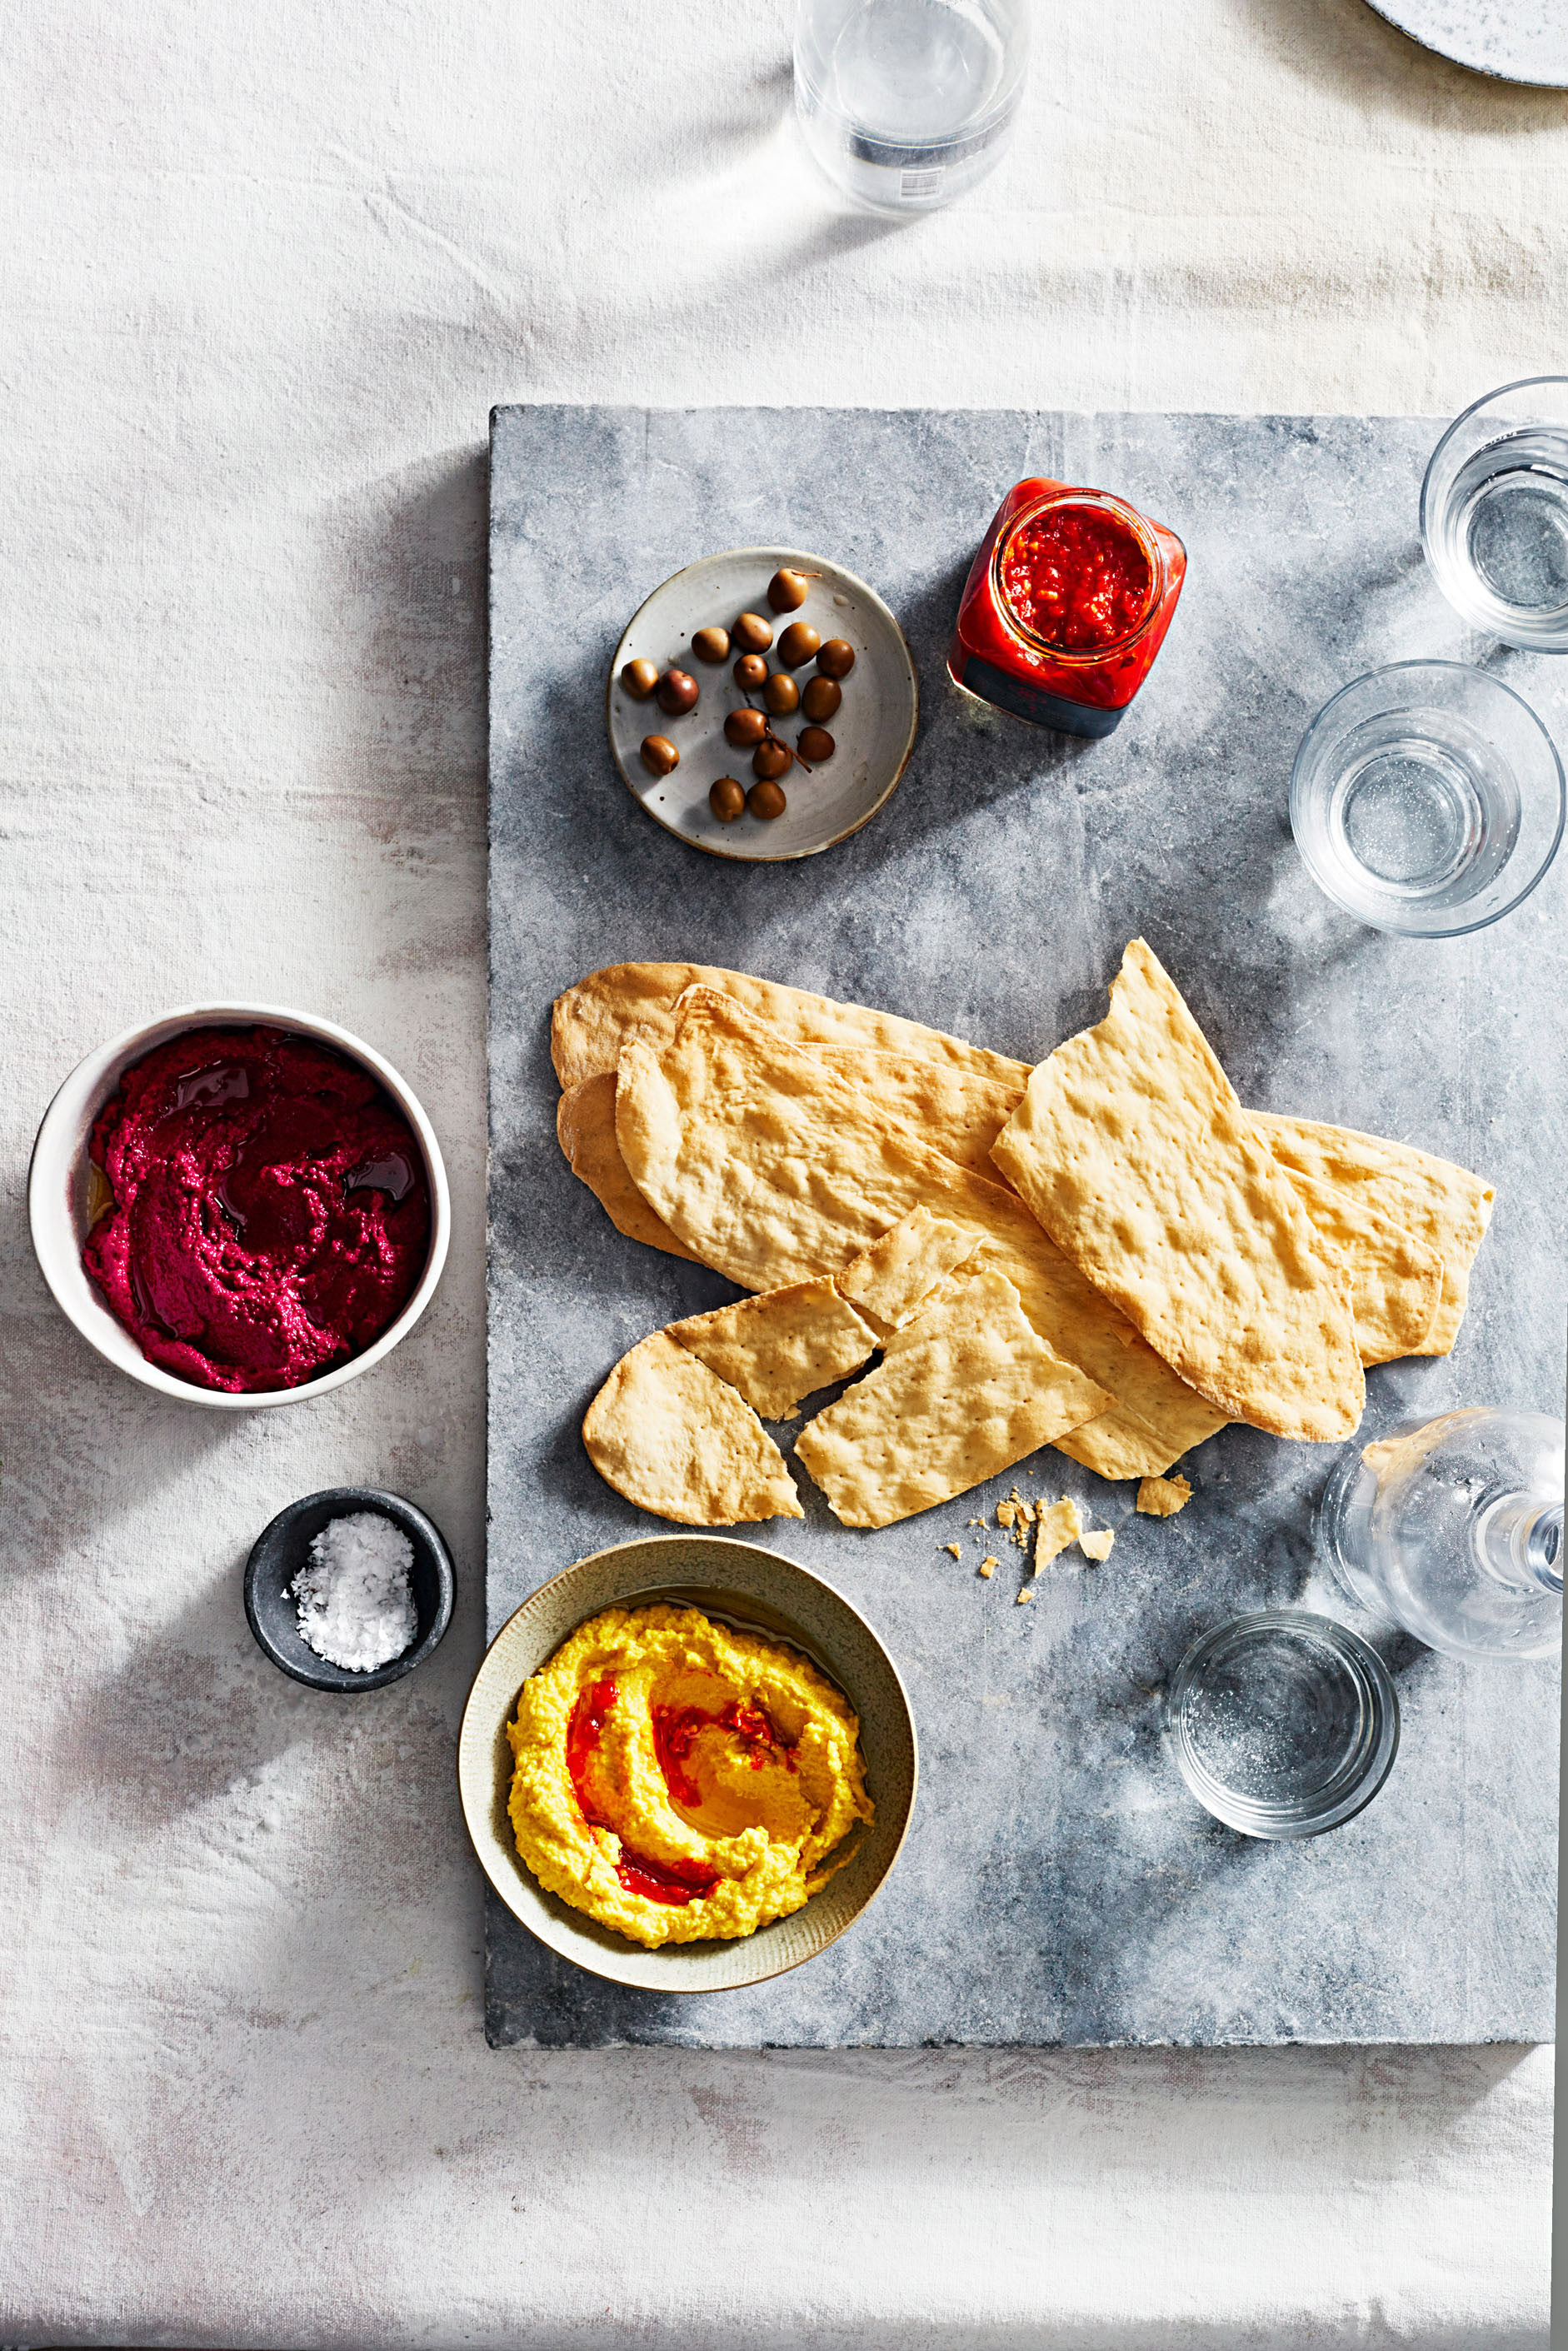 beet-and-tahini-dip-1117-103106112